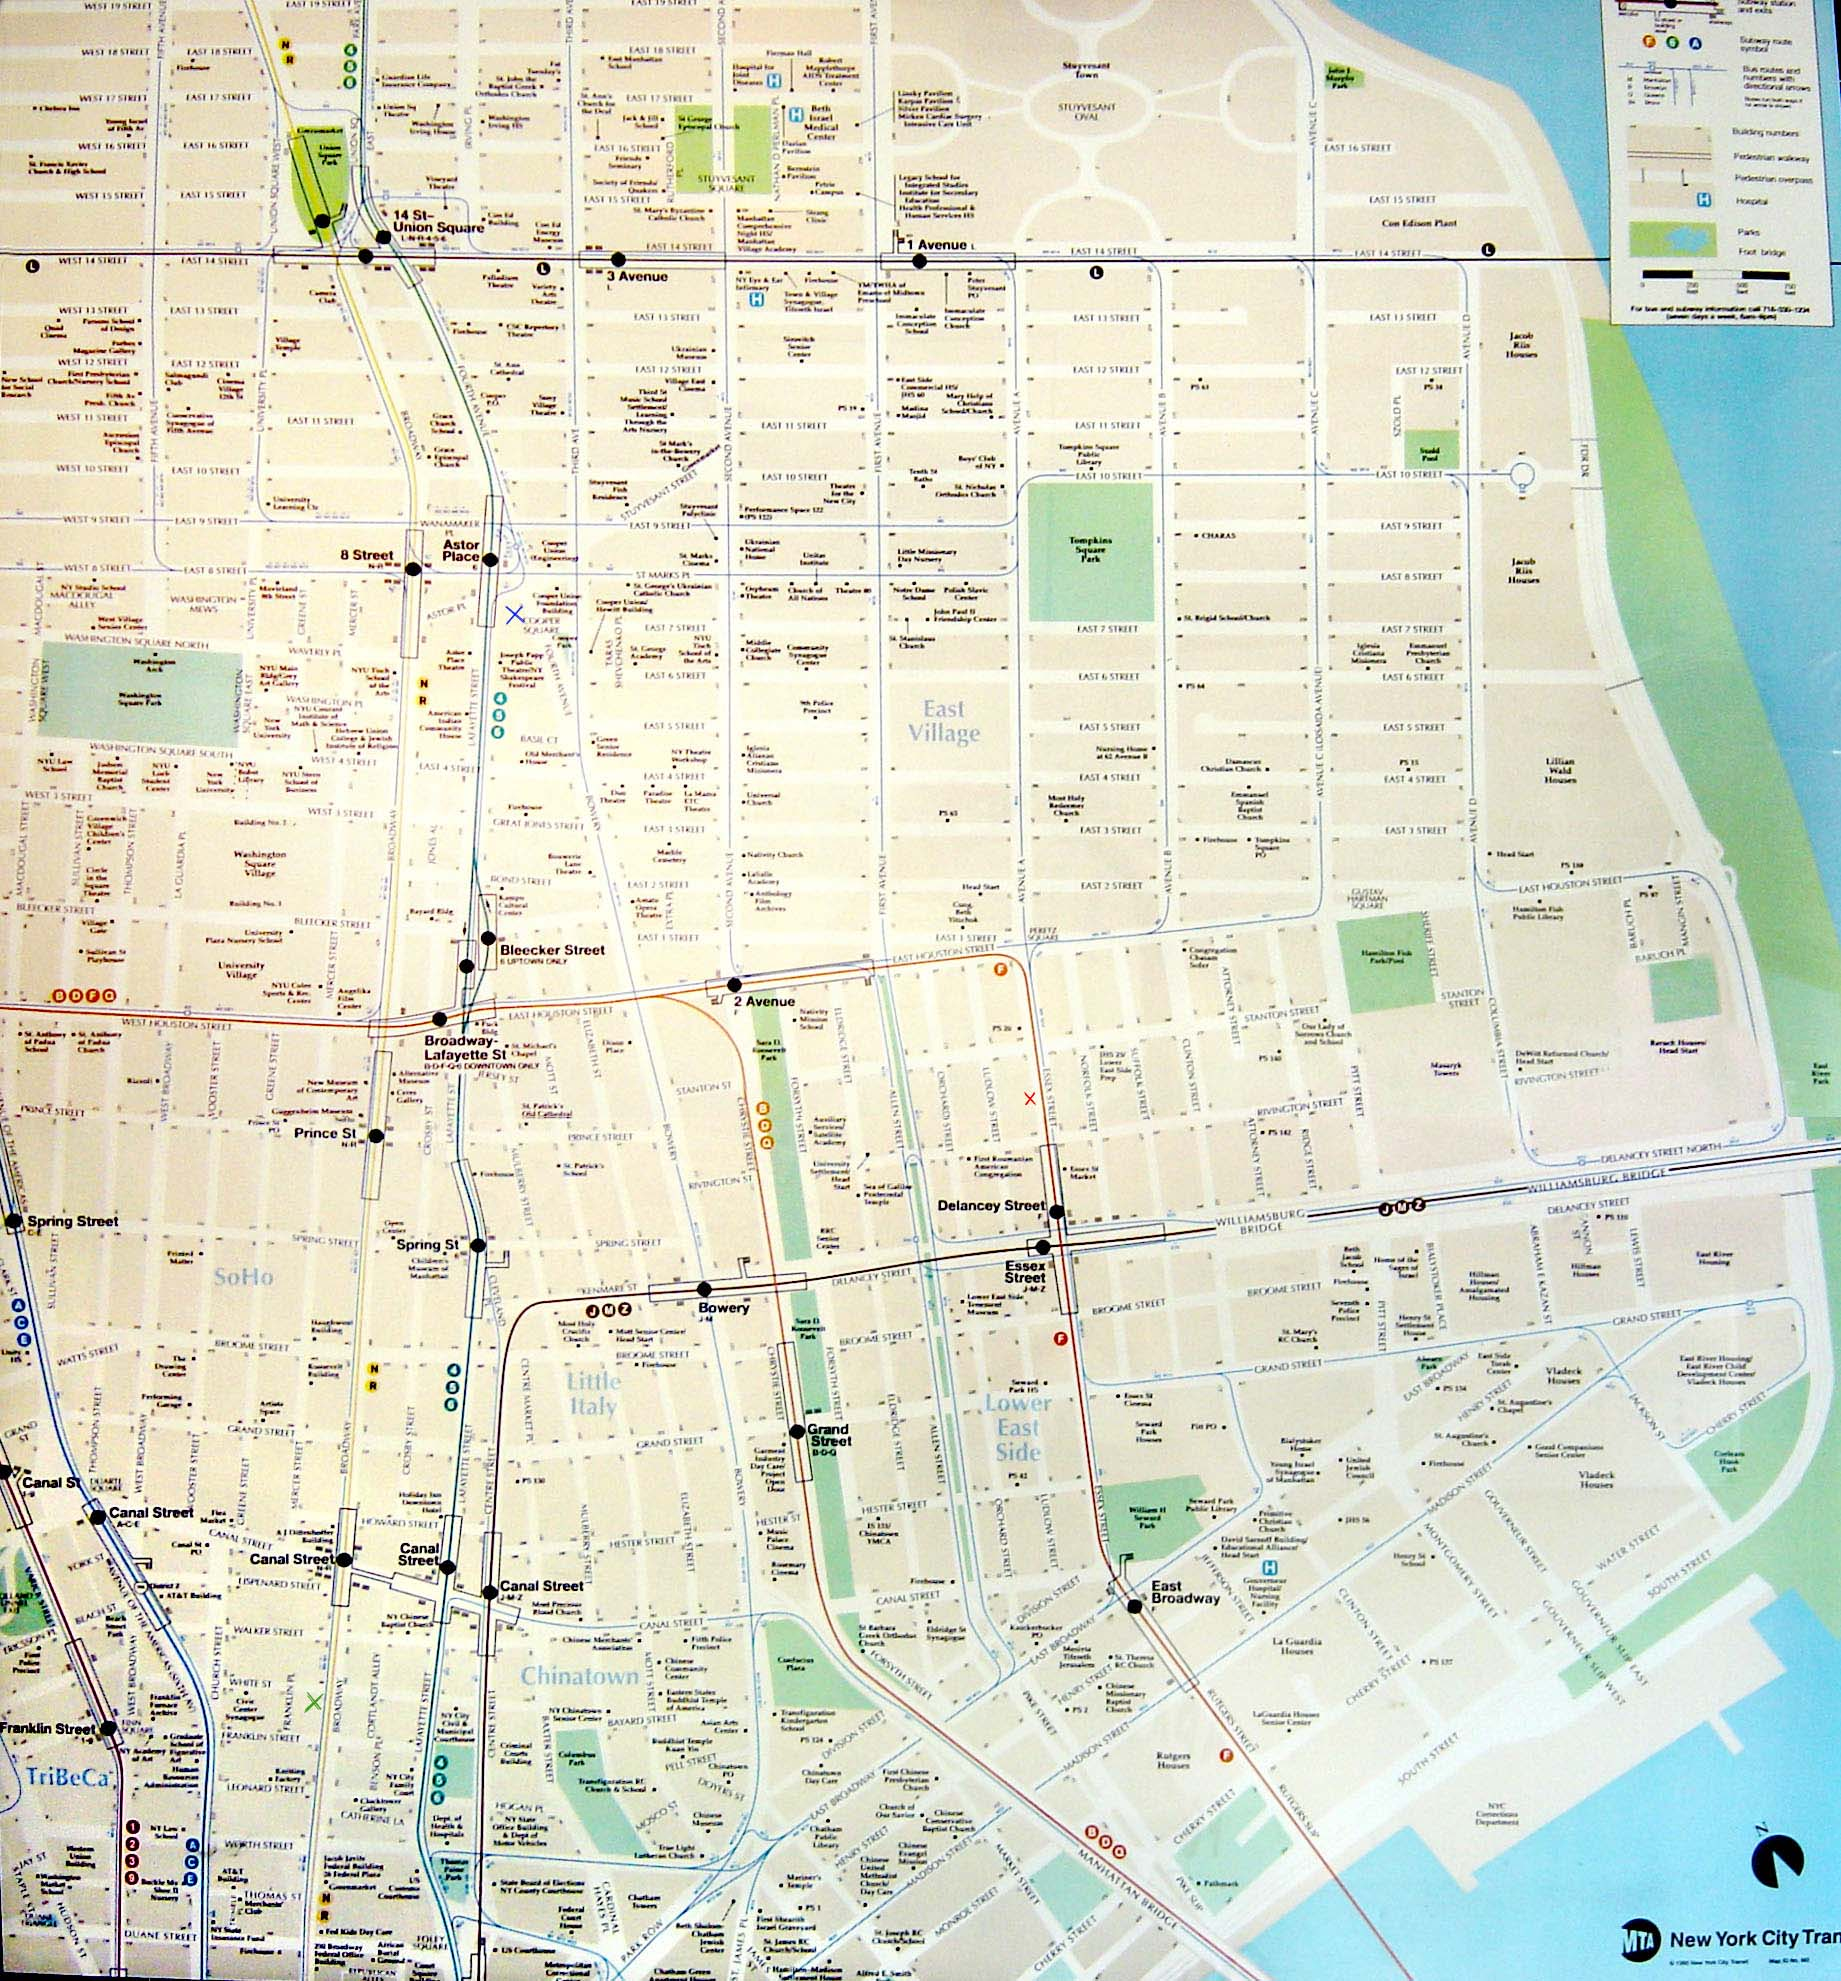 Free Map Of New York City.New York City